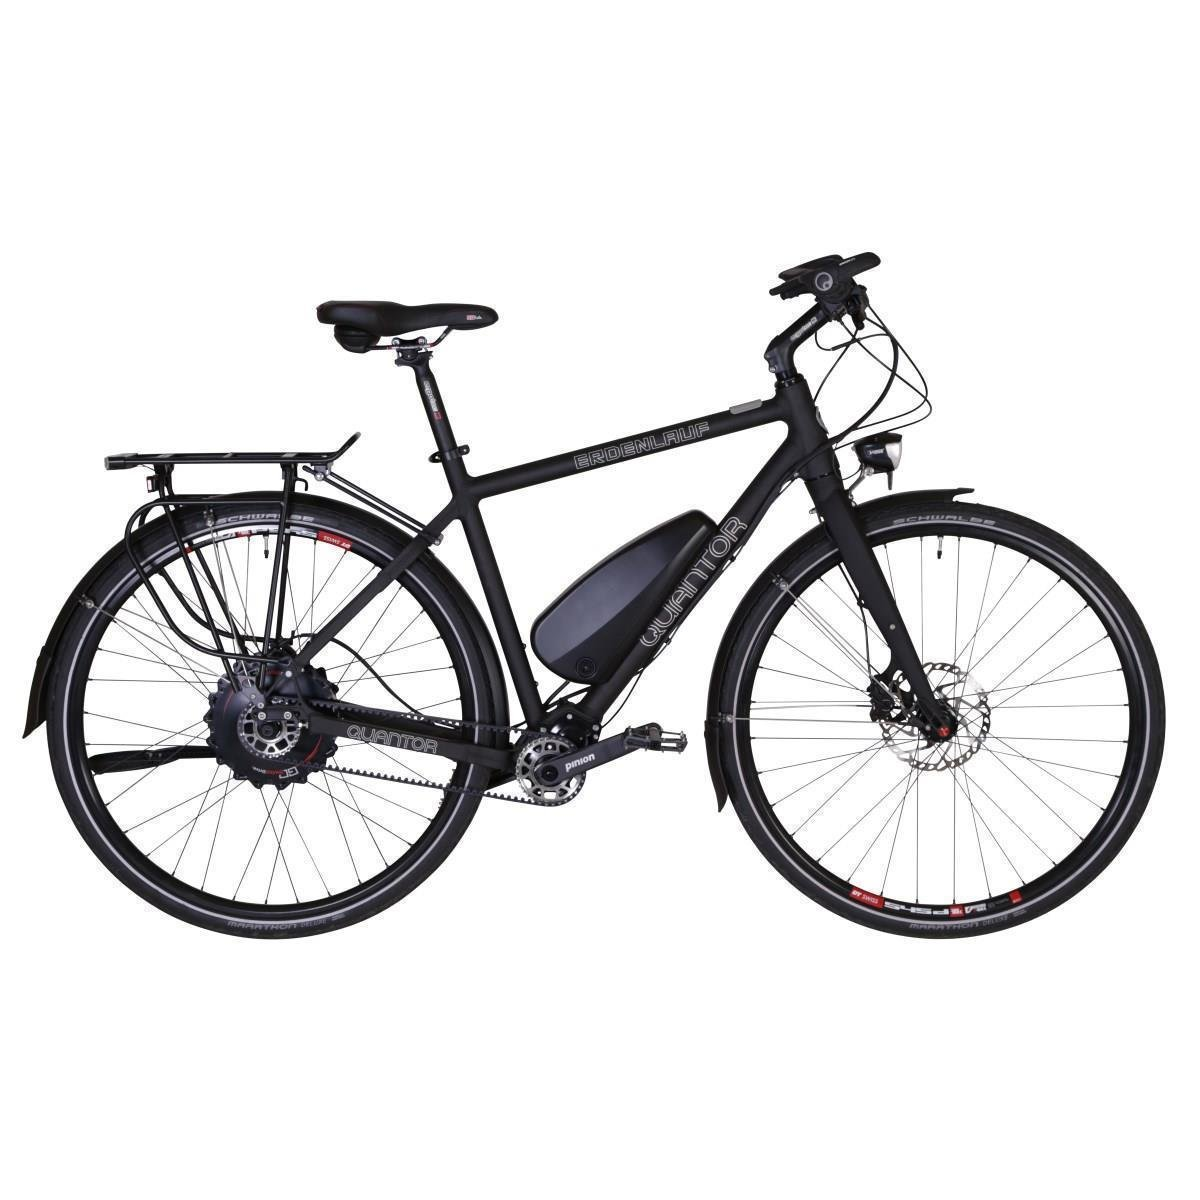 28 zoll luxus alu city bike trekkingrad herrenfahrrad chrisson intouri gent mit 24g shimano. Black Bedroom Furniture Sets. Home Design Ideas